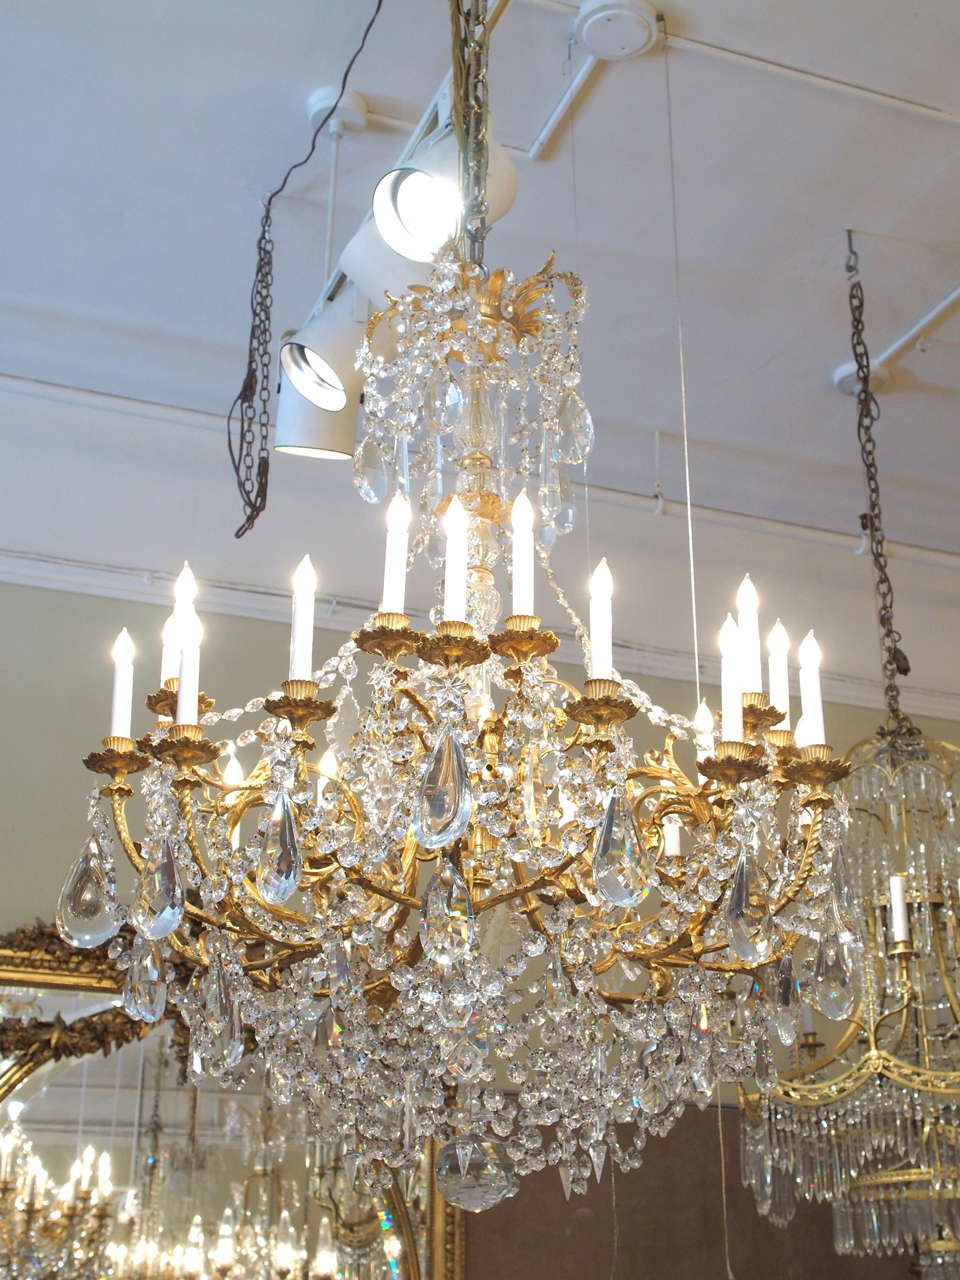 Antique French Baccarat Crystal and Bronze D'ore 24 Light Chandelier circa 1890 2